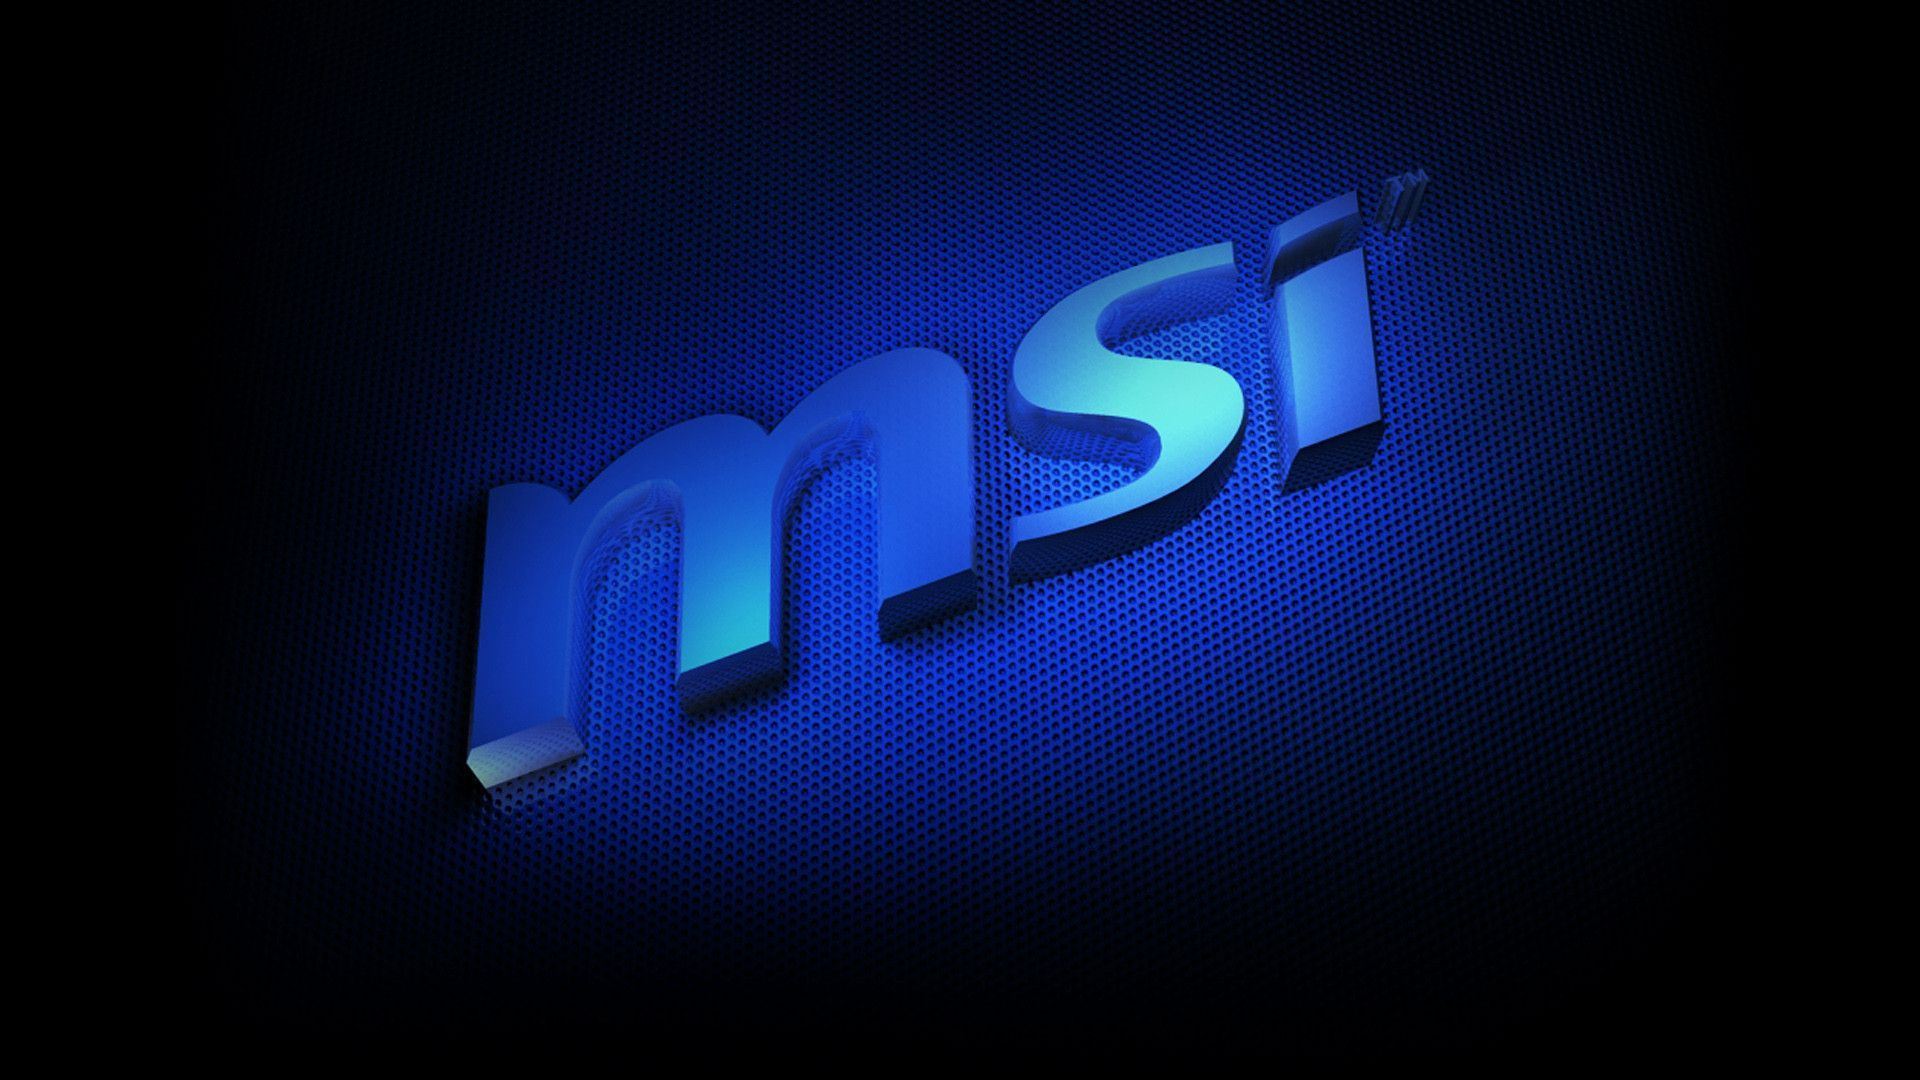 msi backgrounds hd wallpaper